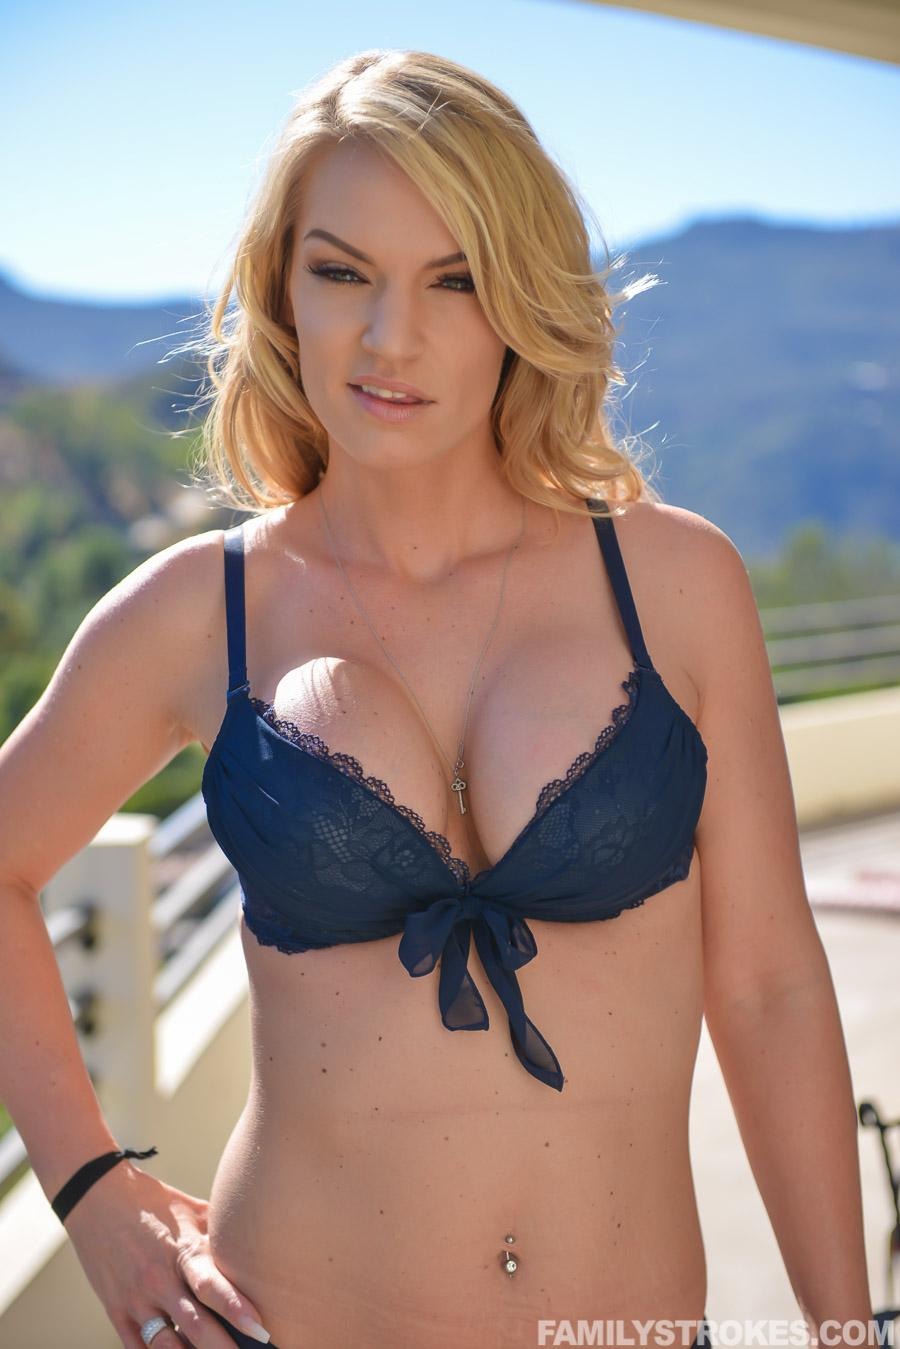 Rachael Cavalli Pictures and Movies at Freeones 113 Links